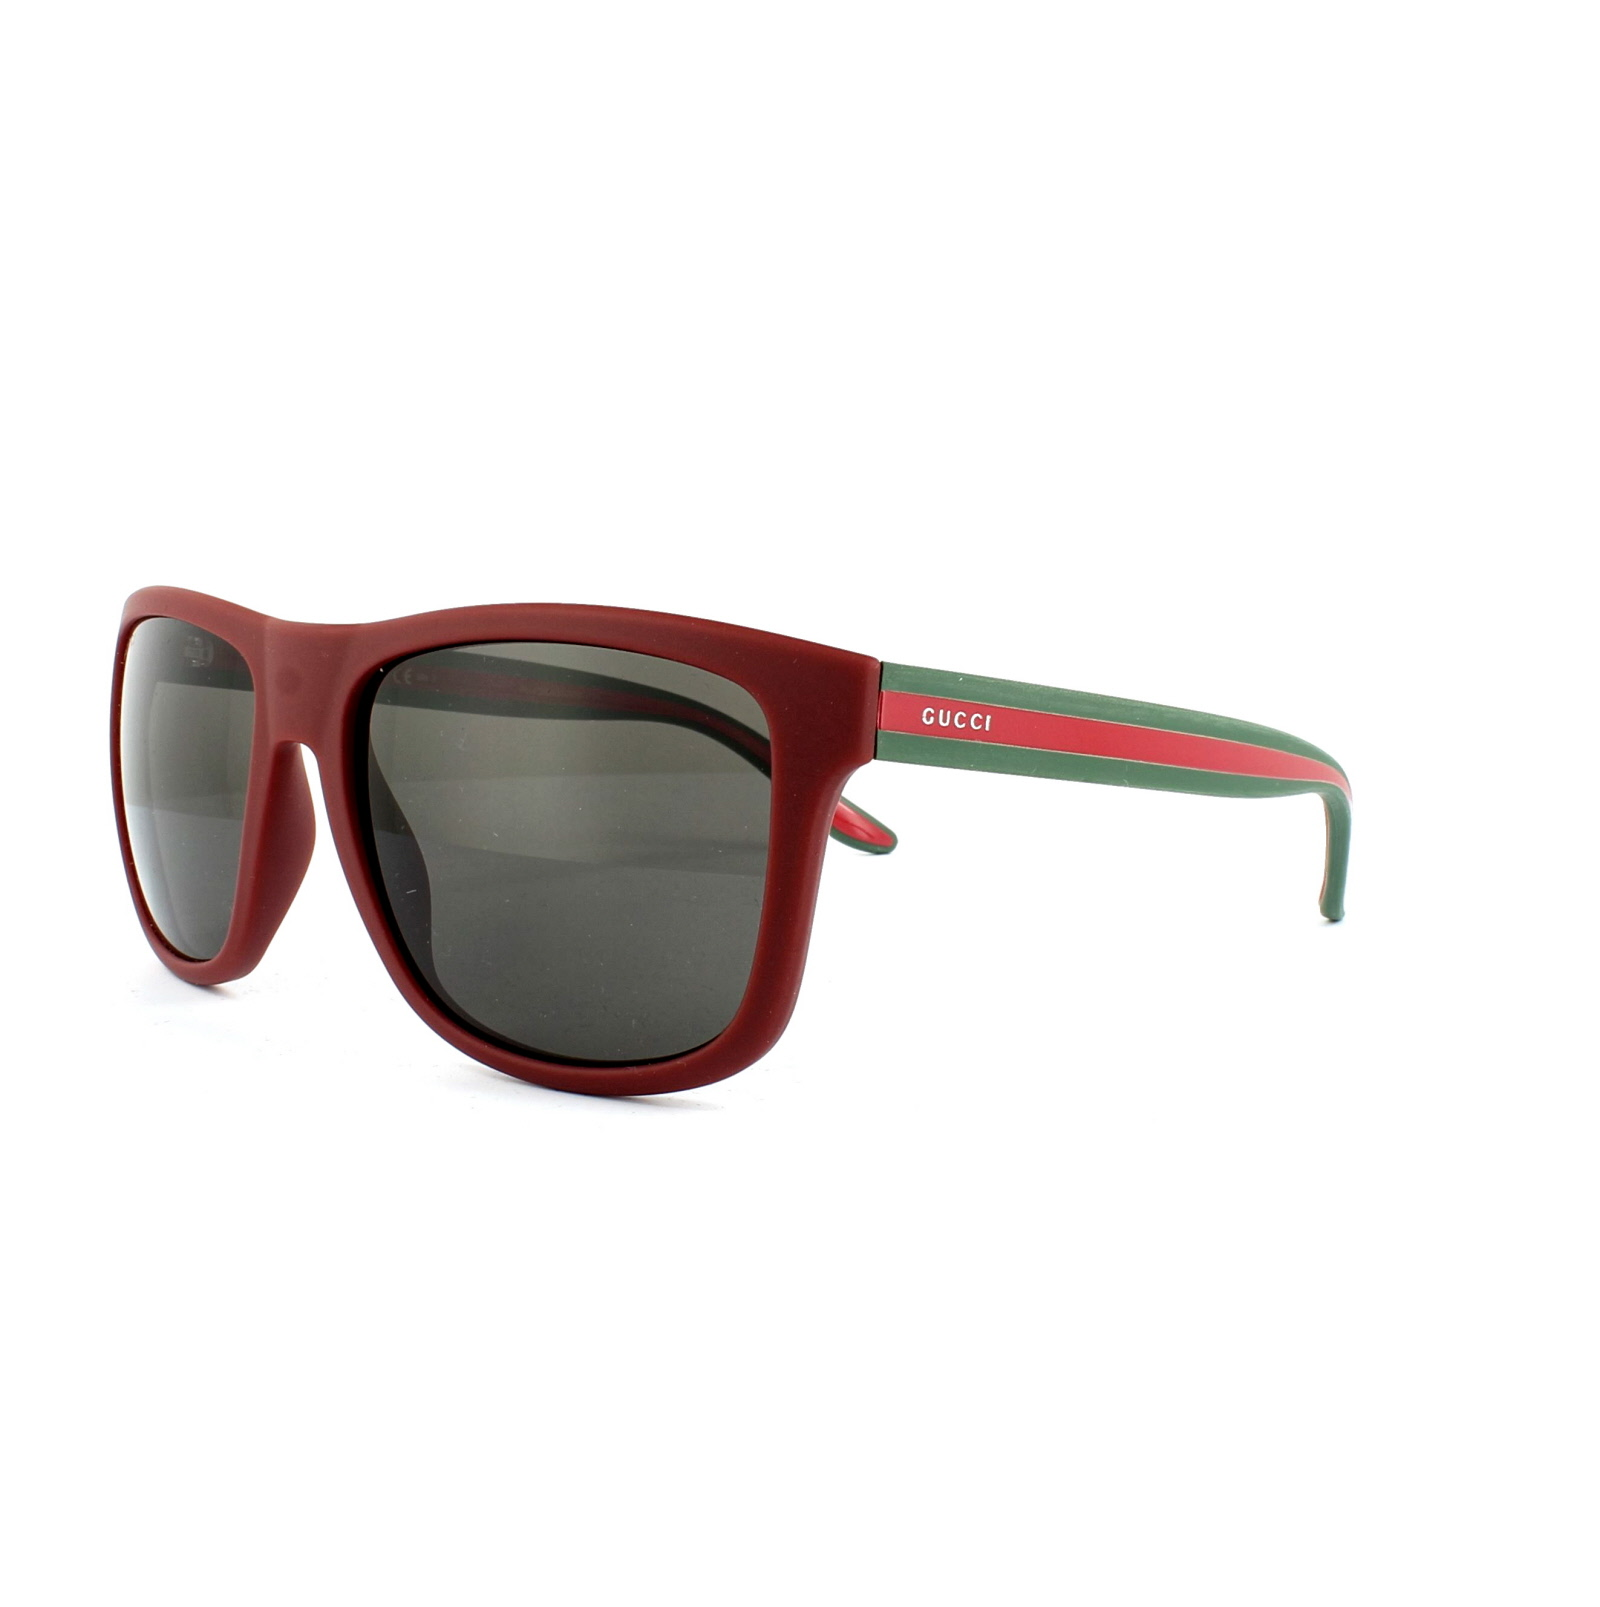 Gucci Aviator Sunglasses Deep Grey Red Green   www.panaust.com.au 5ebf8ad1d0